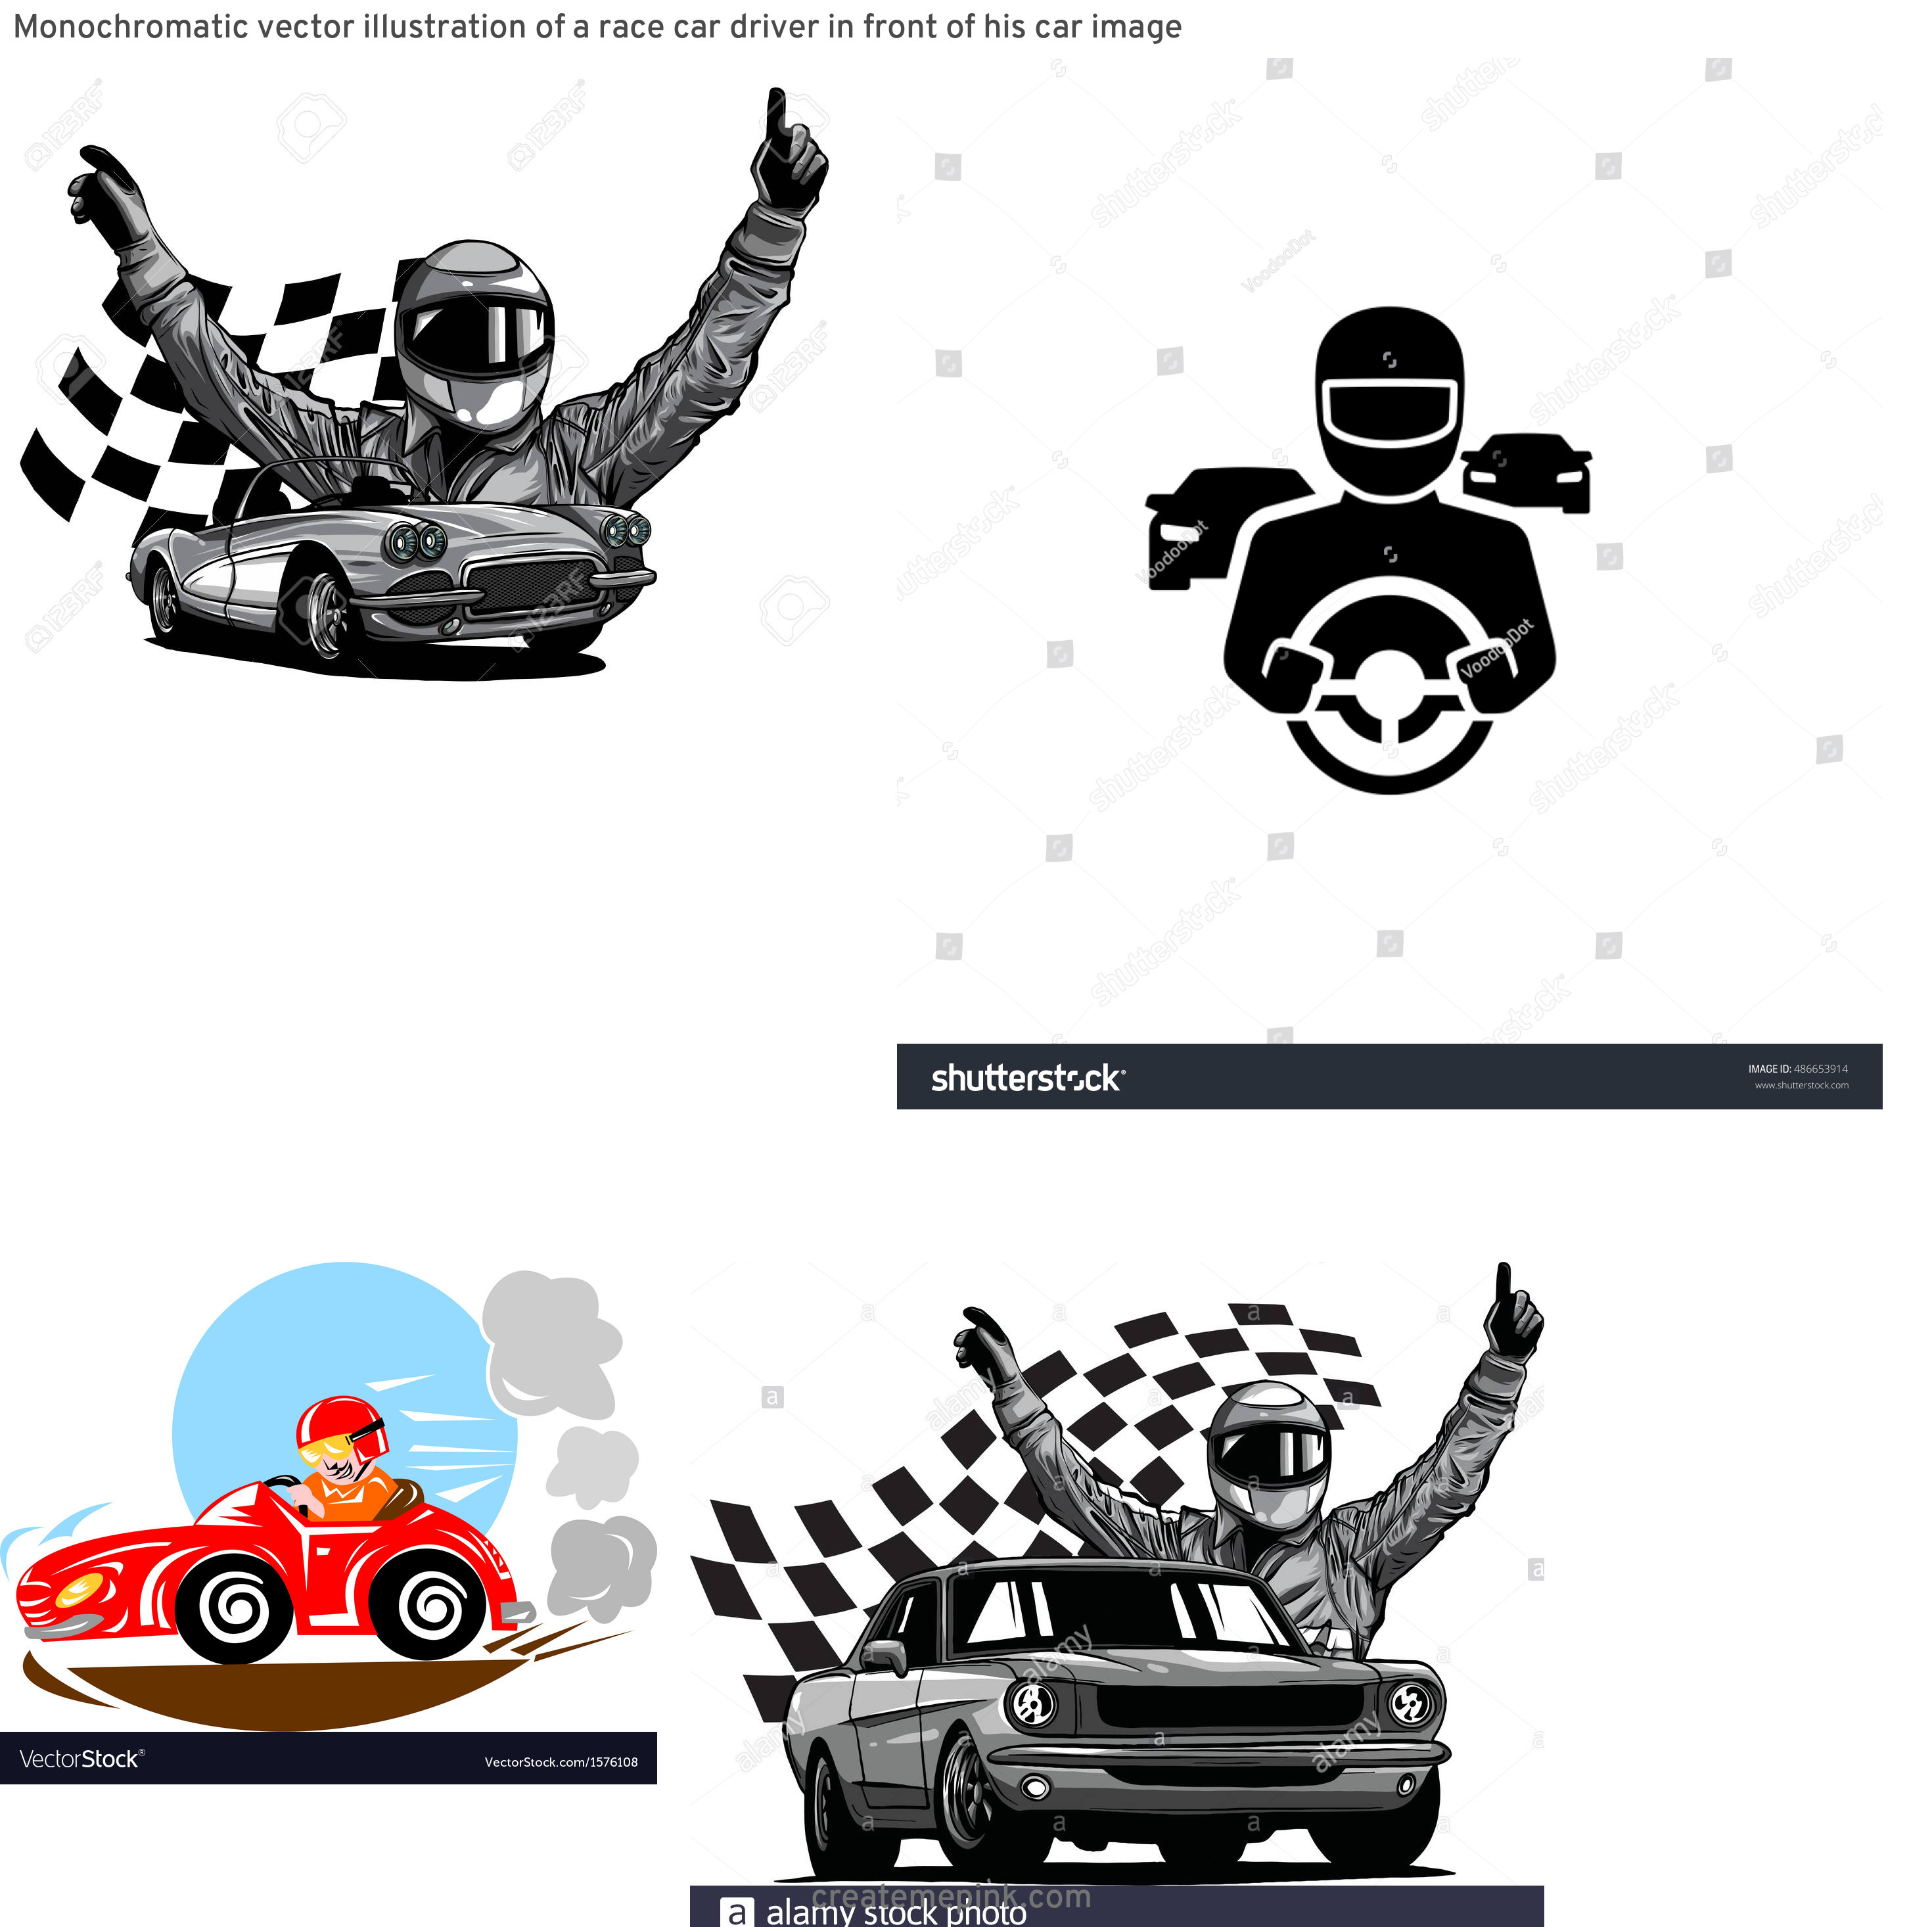 Vector Race Driver: Monochromatic Vector Illustration Of A Race Car Driver In Front Of His Car Image